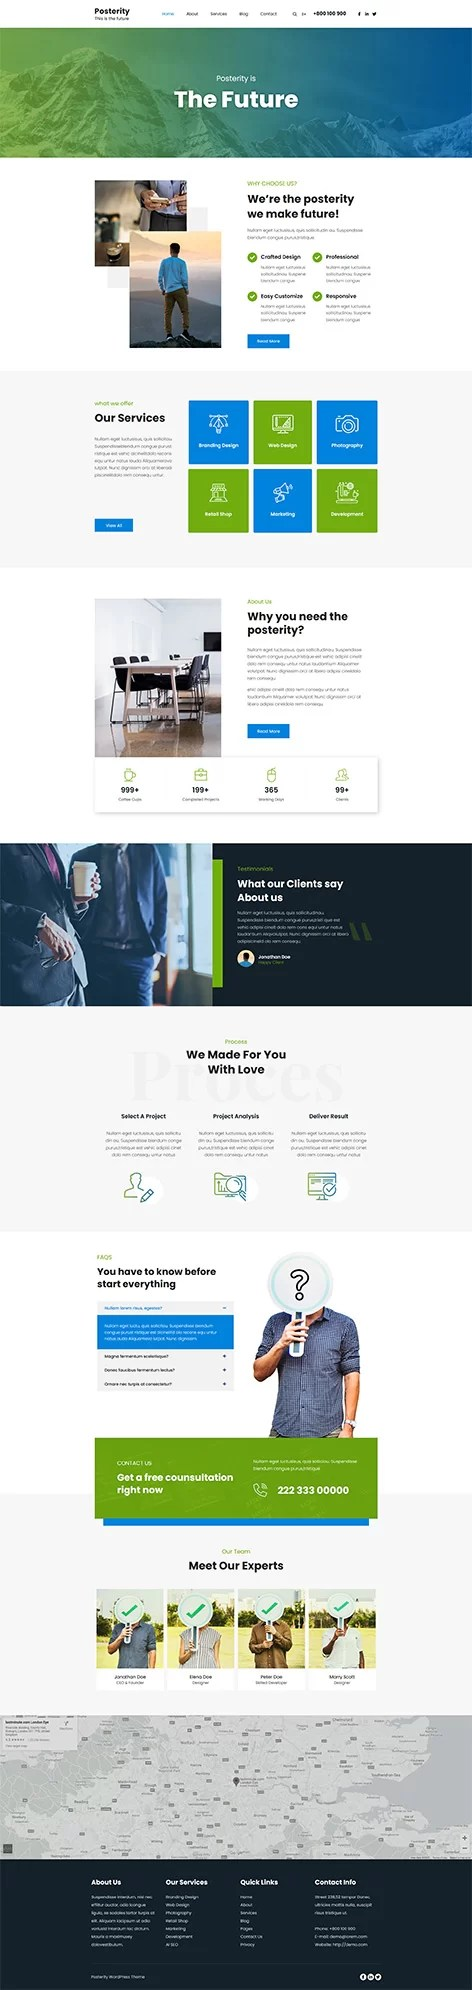 most customizable free WordPress theme